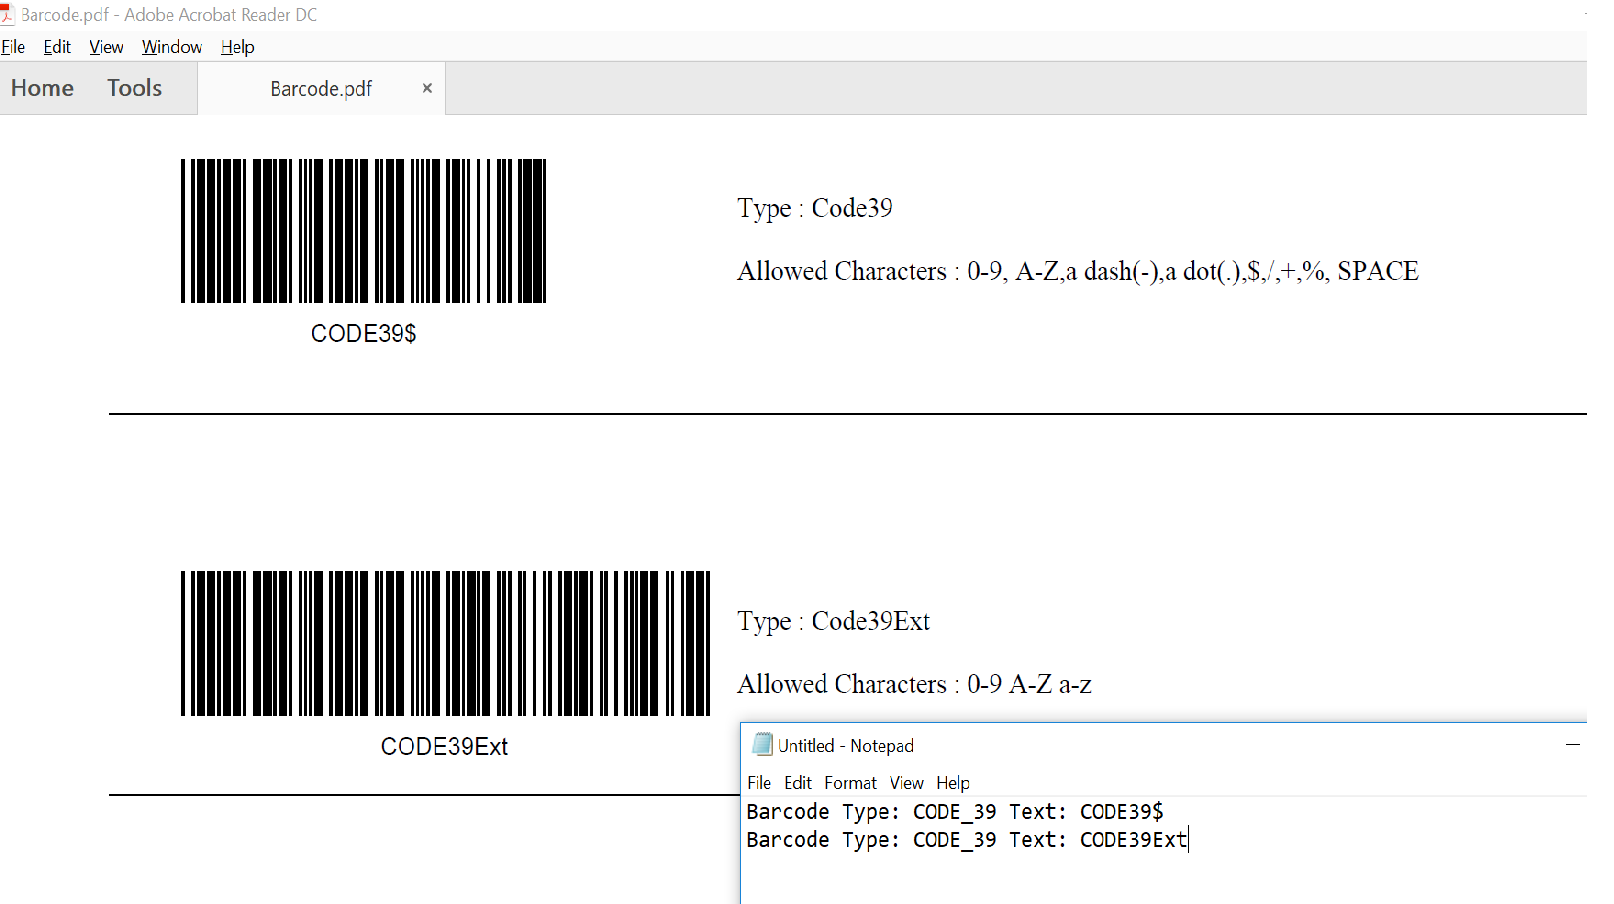 SF Barcode Reader OPX | Scans 1D and 2D barcodes from PDF